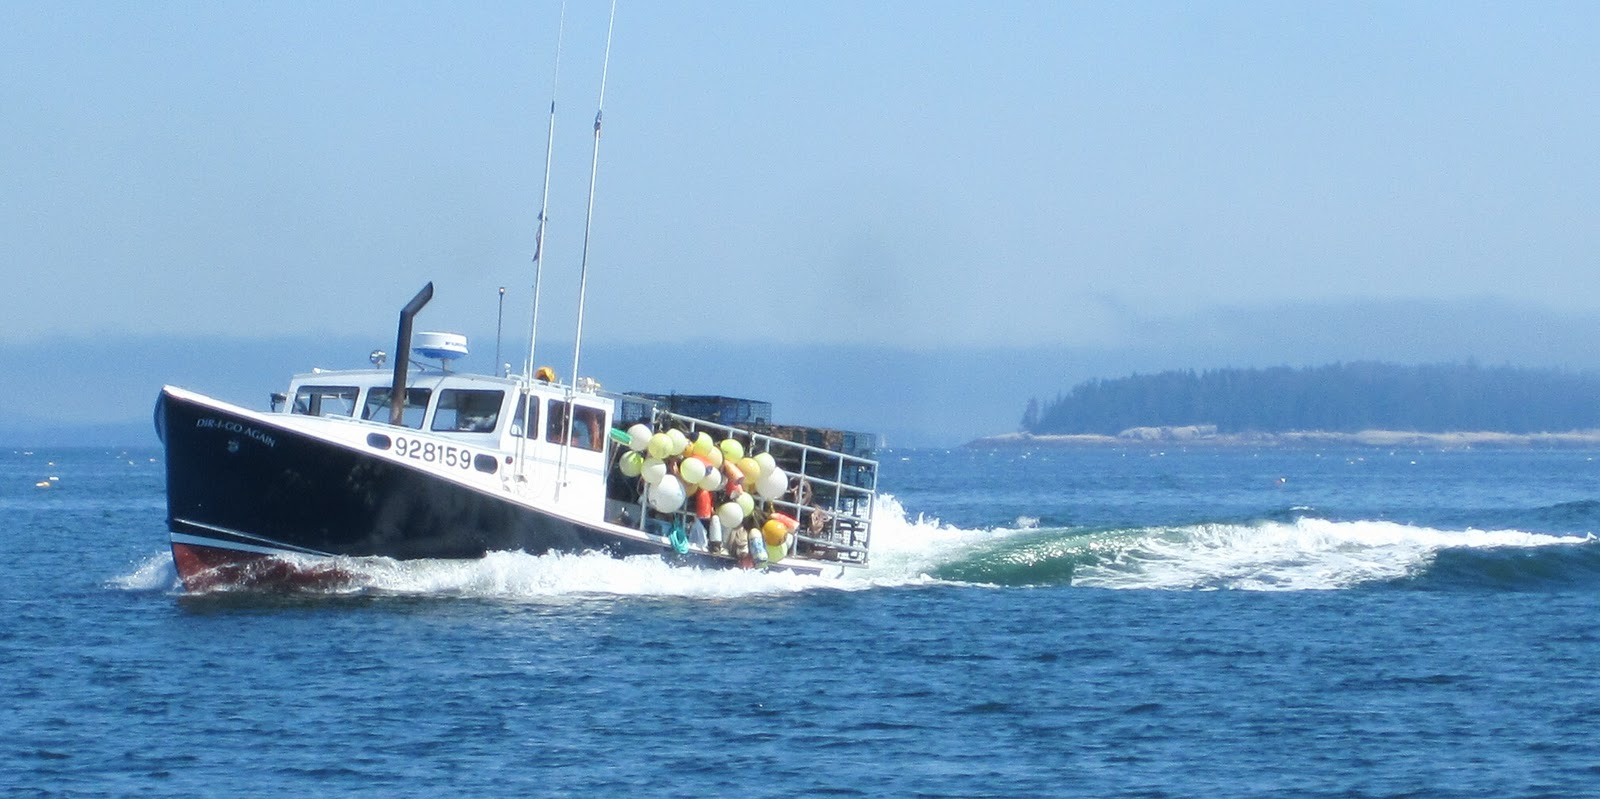 Pecan Travellog: Notes on Maine - Lobster buoys